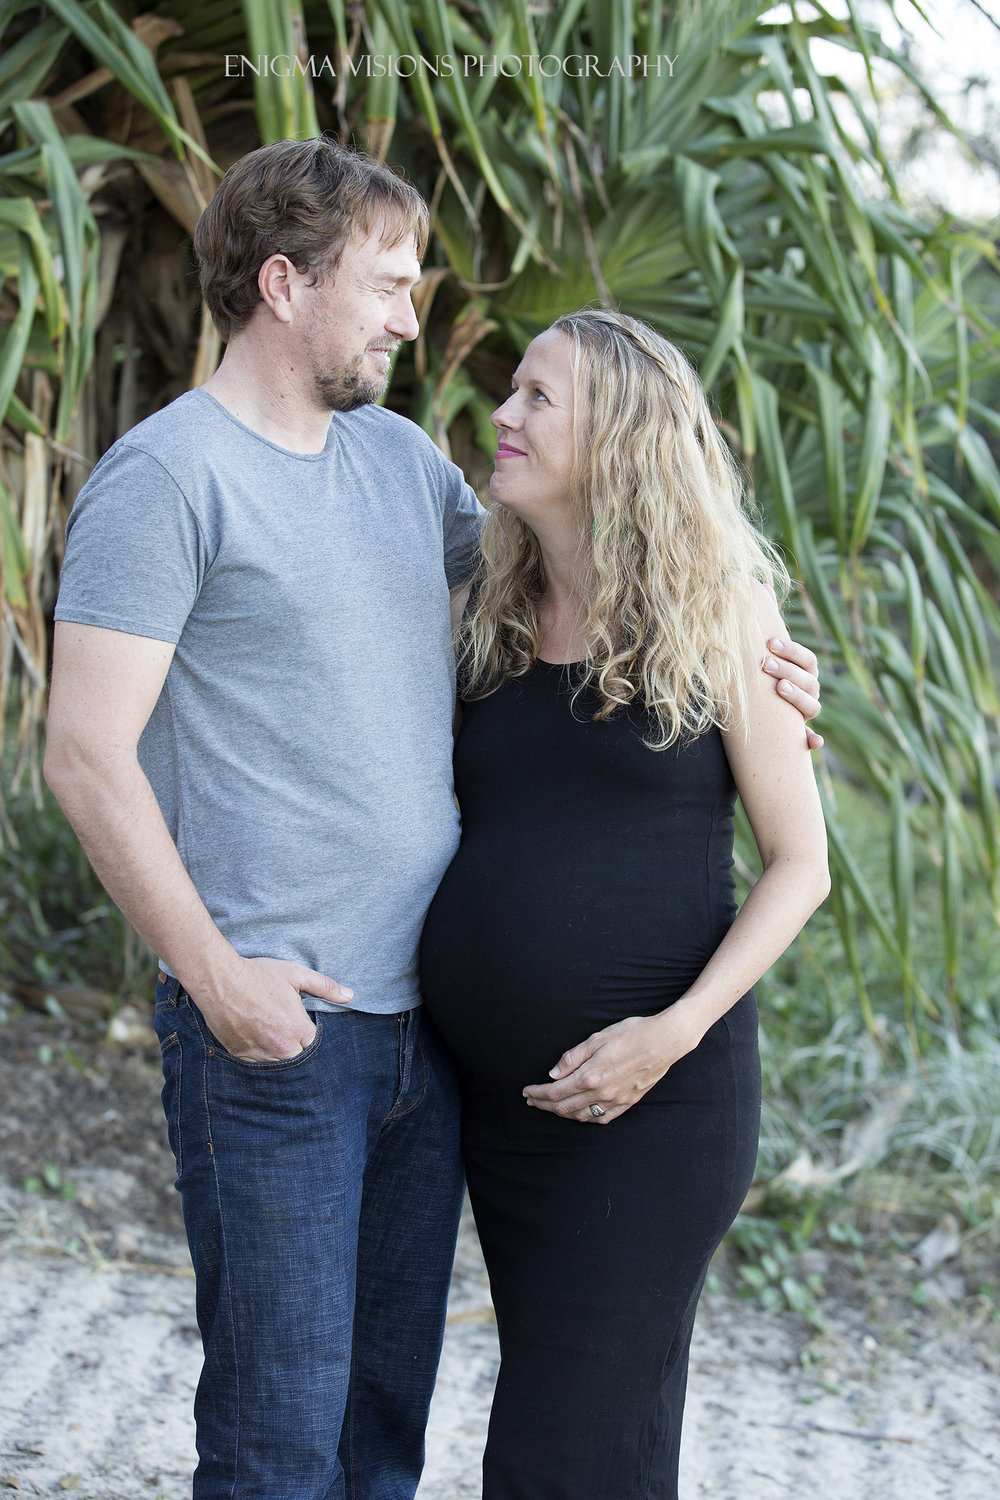 enigma_visions_photography_maternity_melandandrew_kingscliff (16).jpg